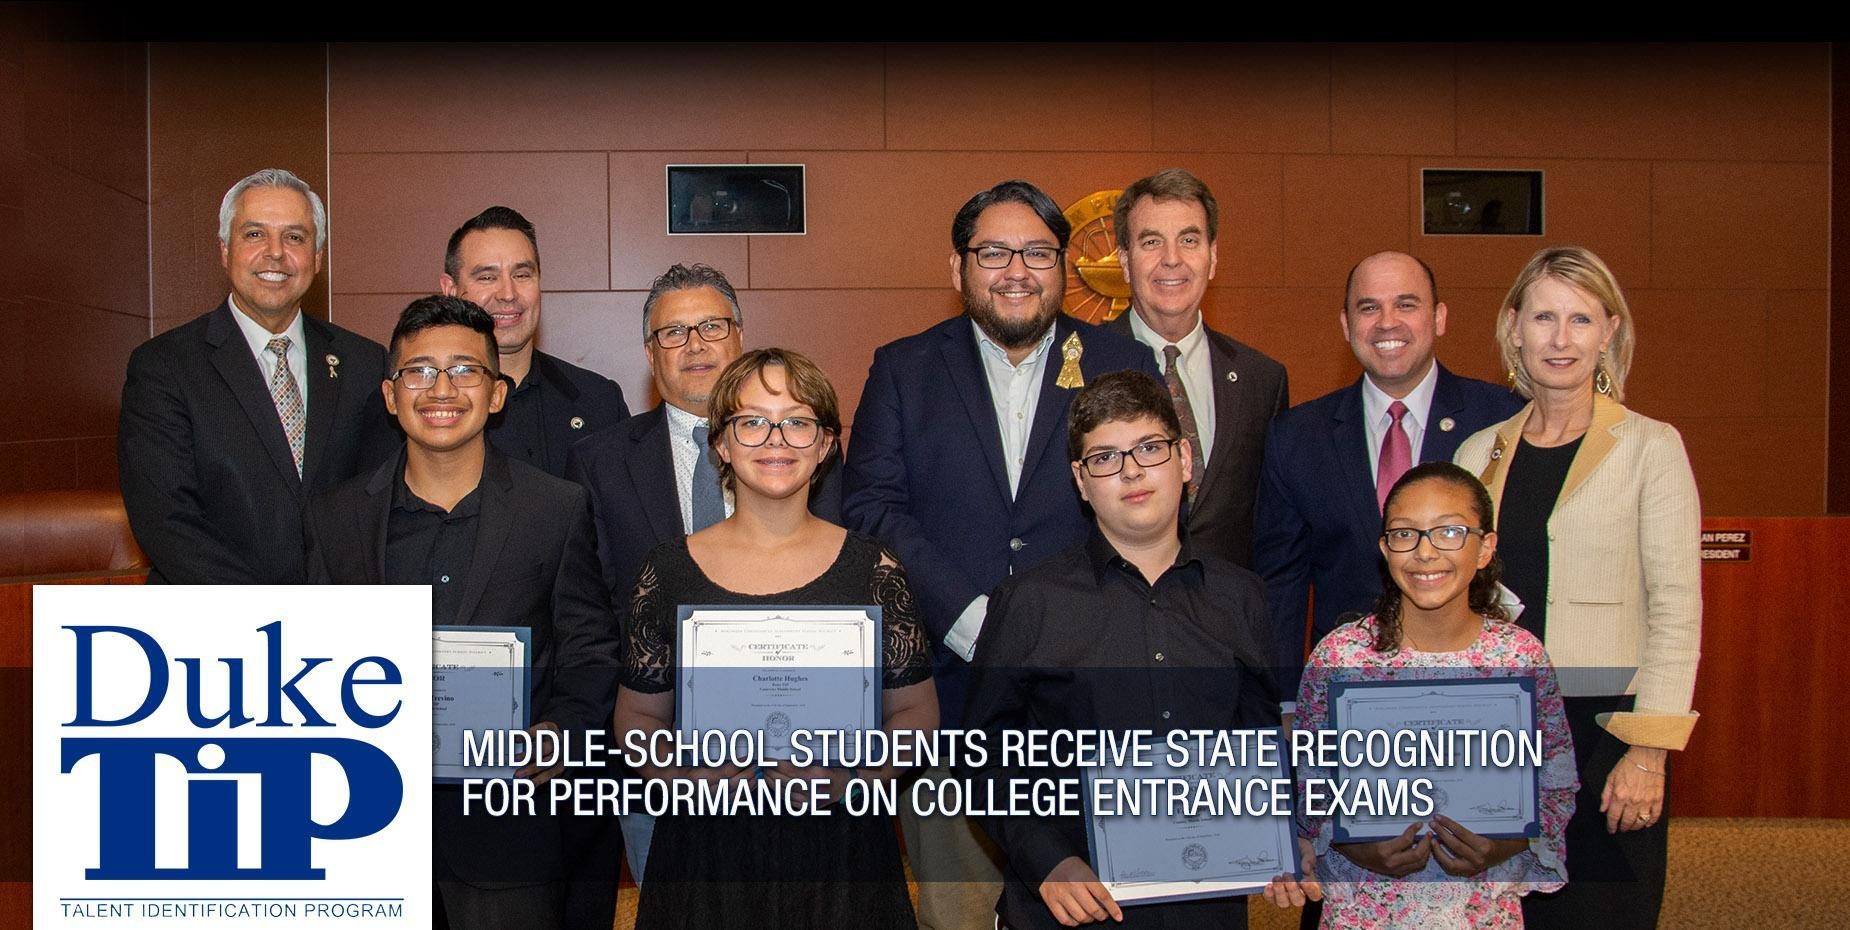 Middle-school students receive state recognition for performance on college entrance exams